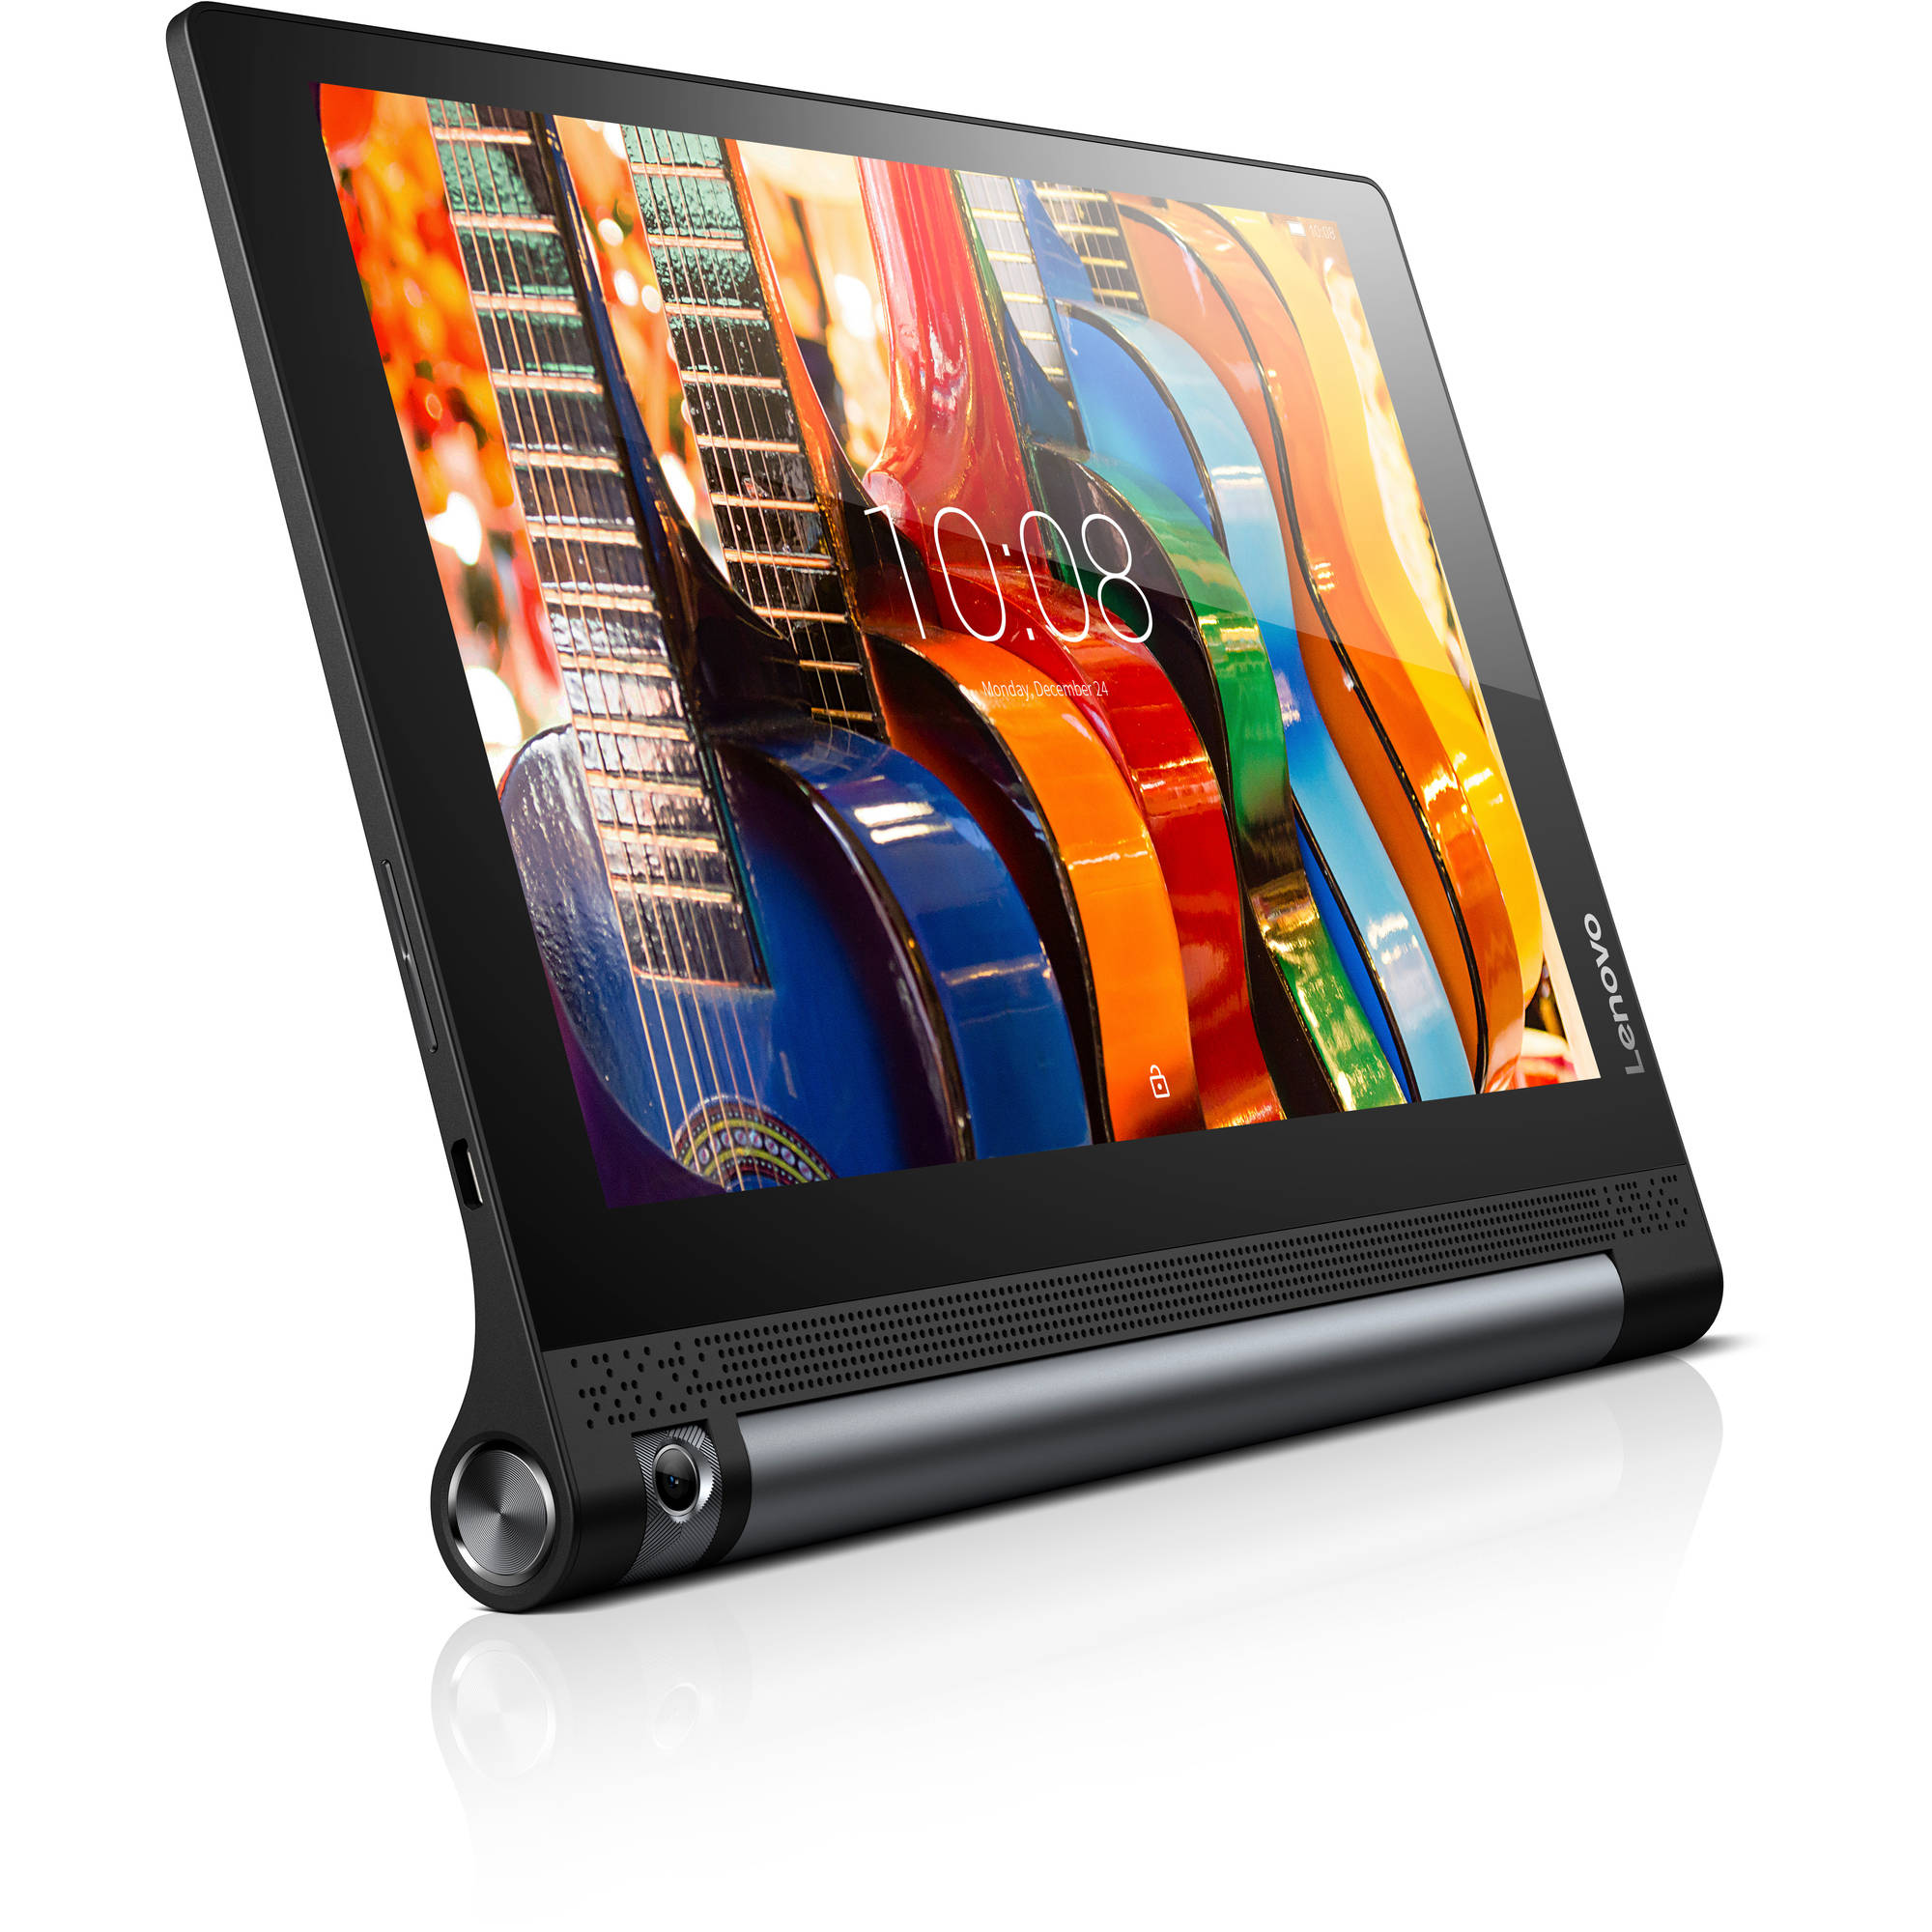 """Lenovo YOGA Tab 3 with WiFi 10.1"""" Touchscreen Tablet PC Featuring Android 5.1 (Lollipop) Operating System by Lenovo"""